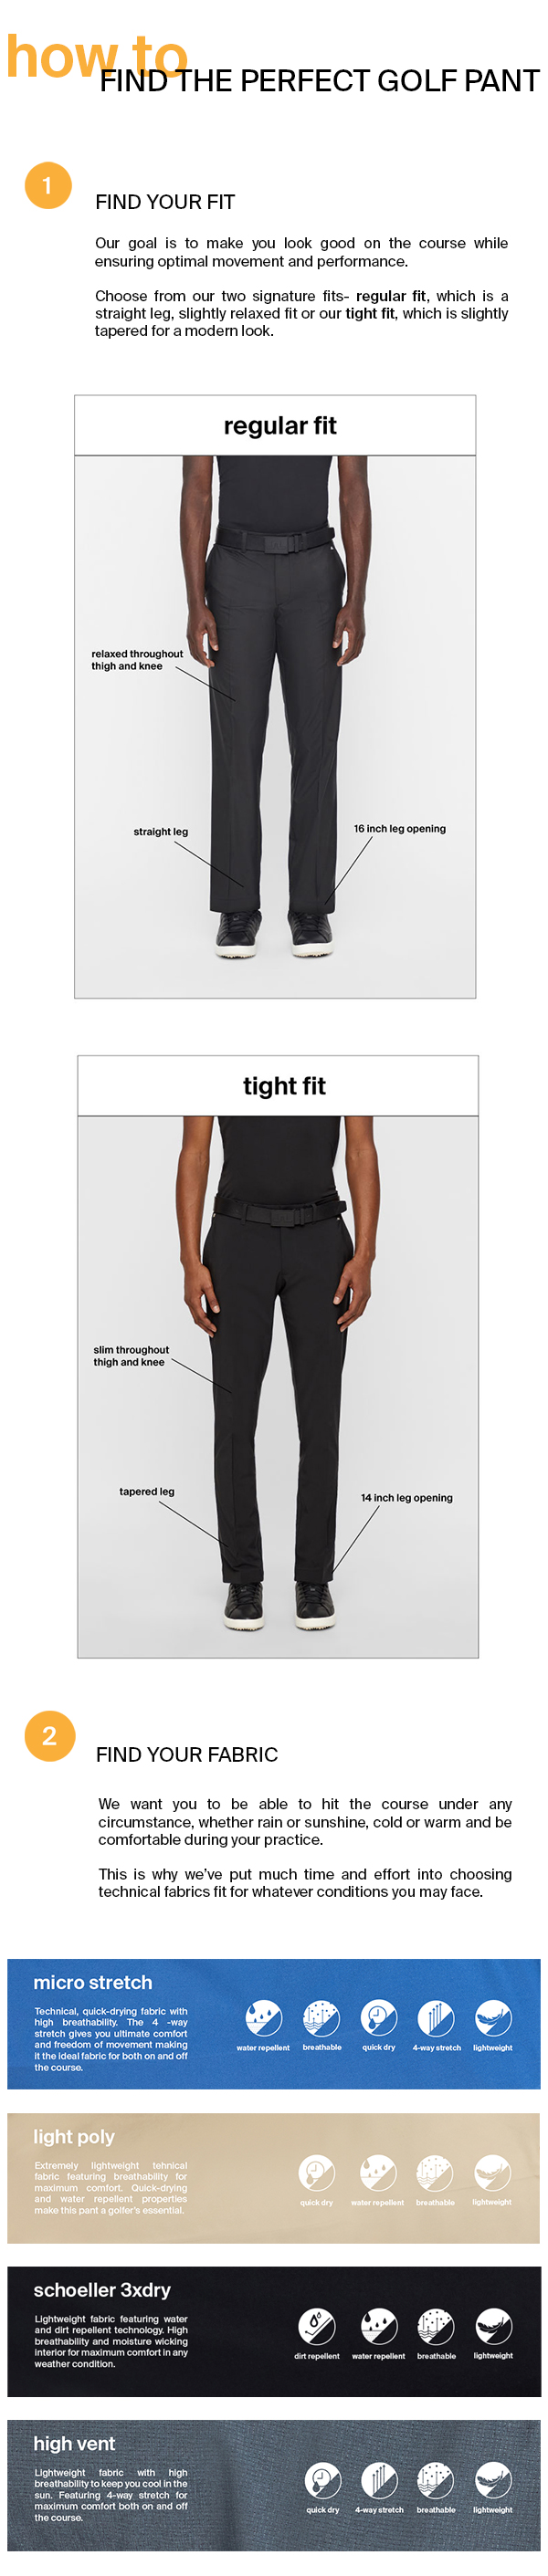 golf pant fit guide row1 mobile